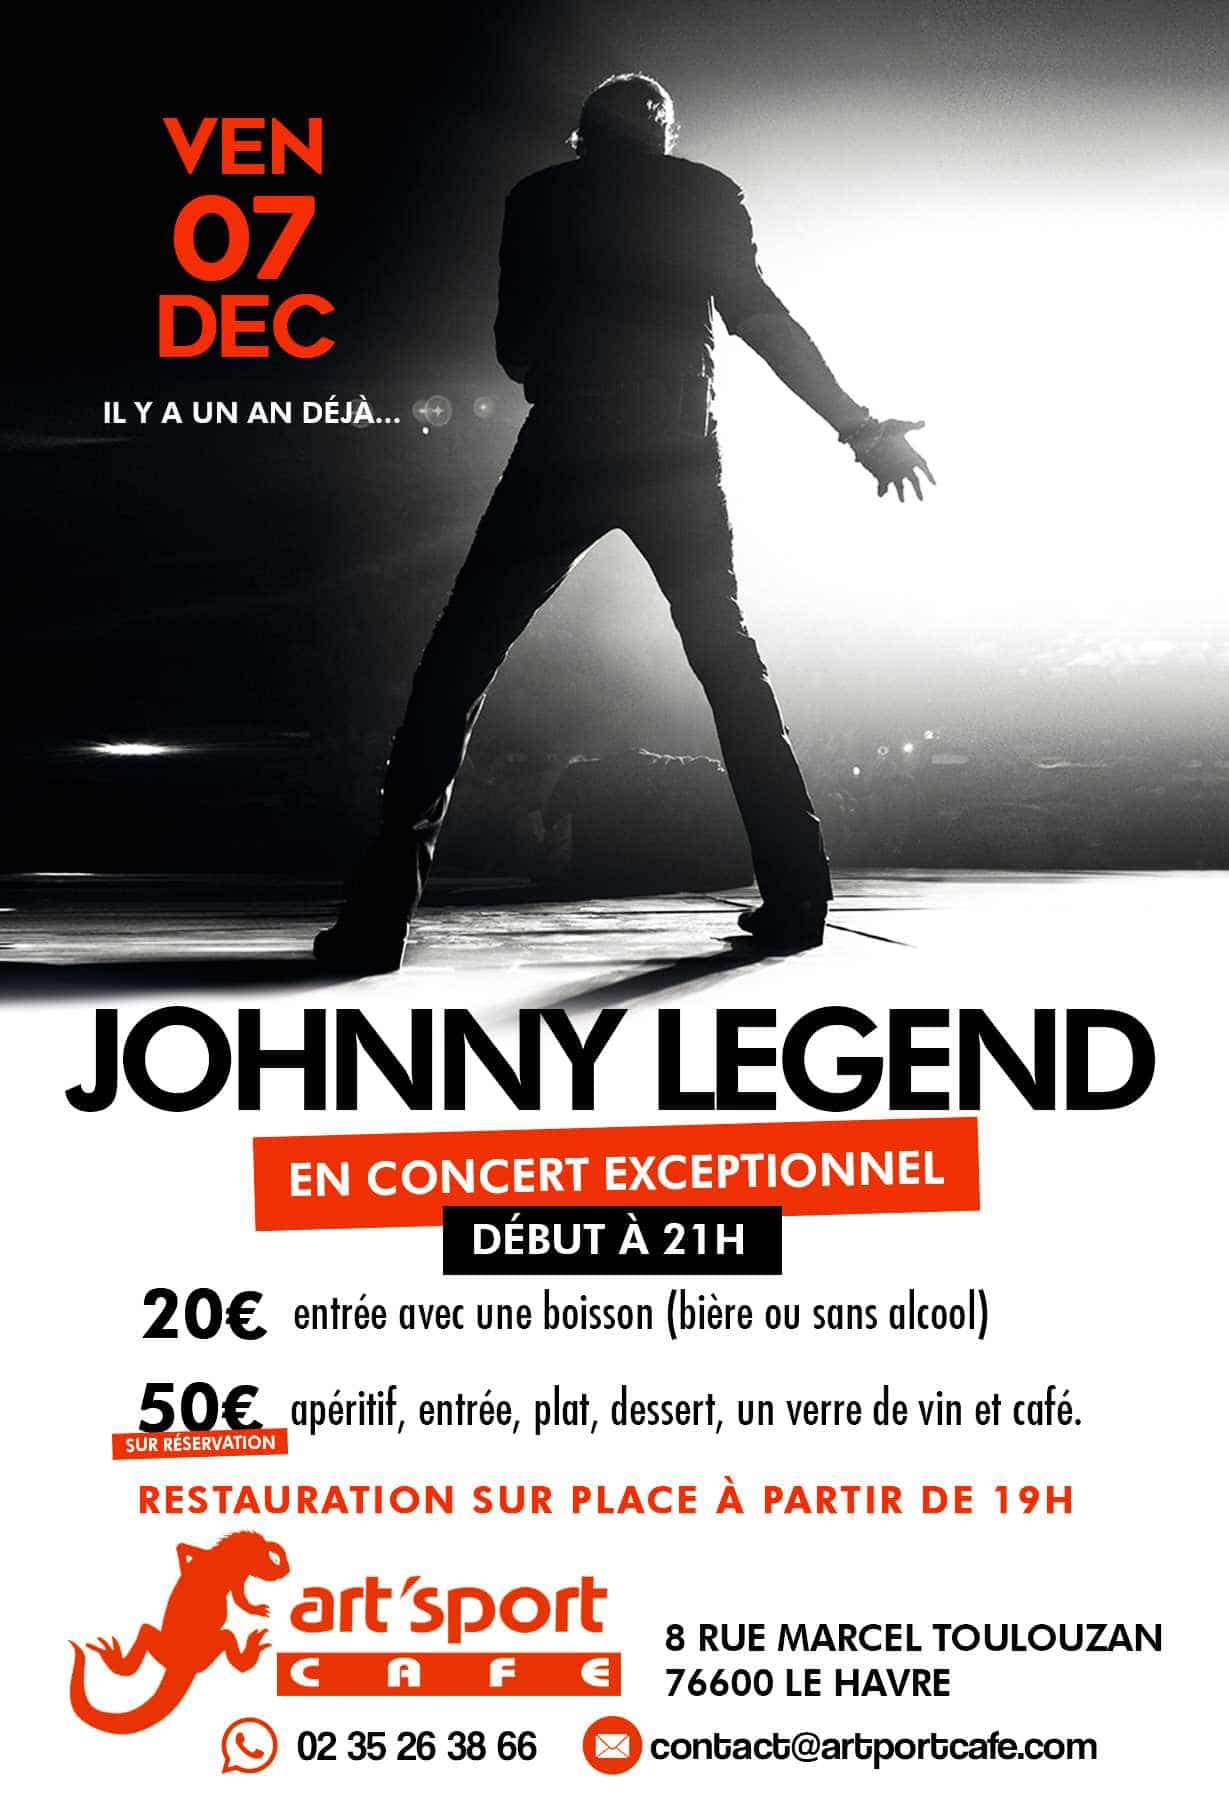 Johnny Legend 7 déc 2018